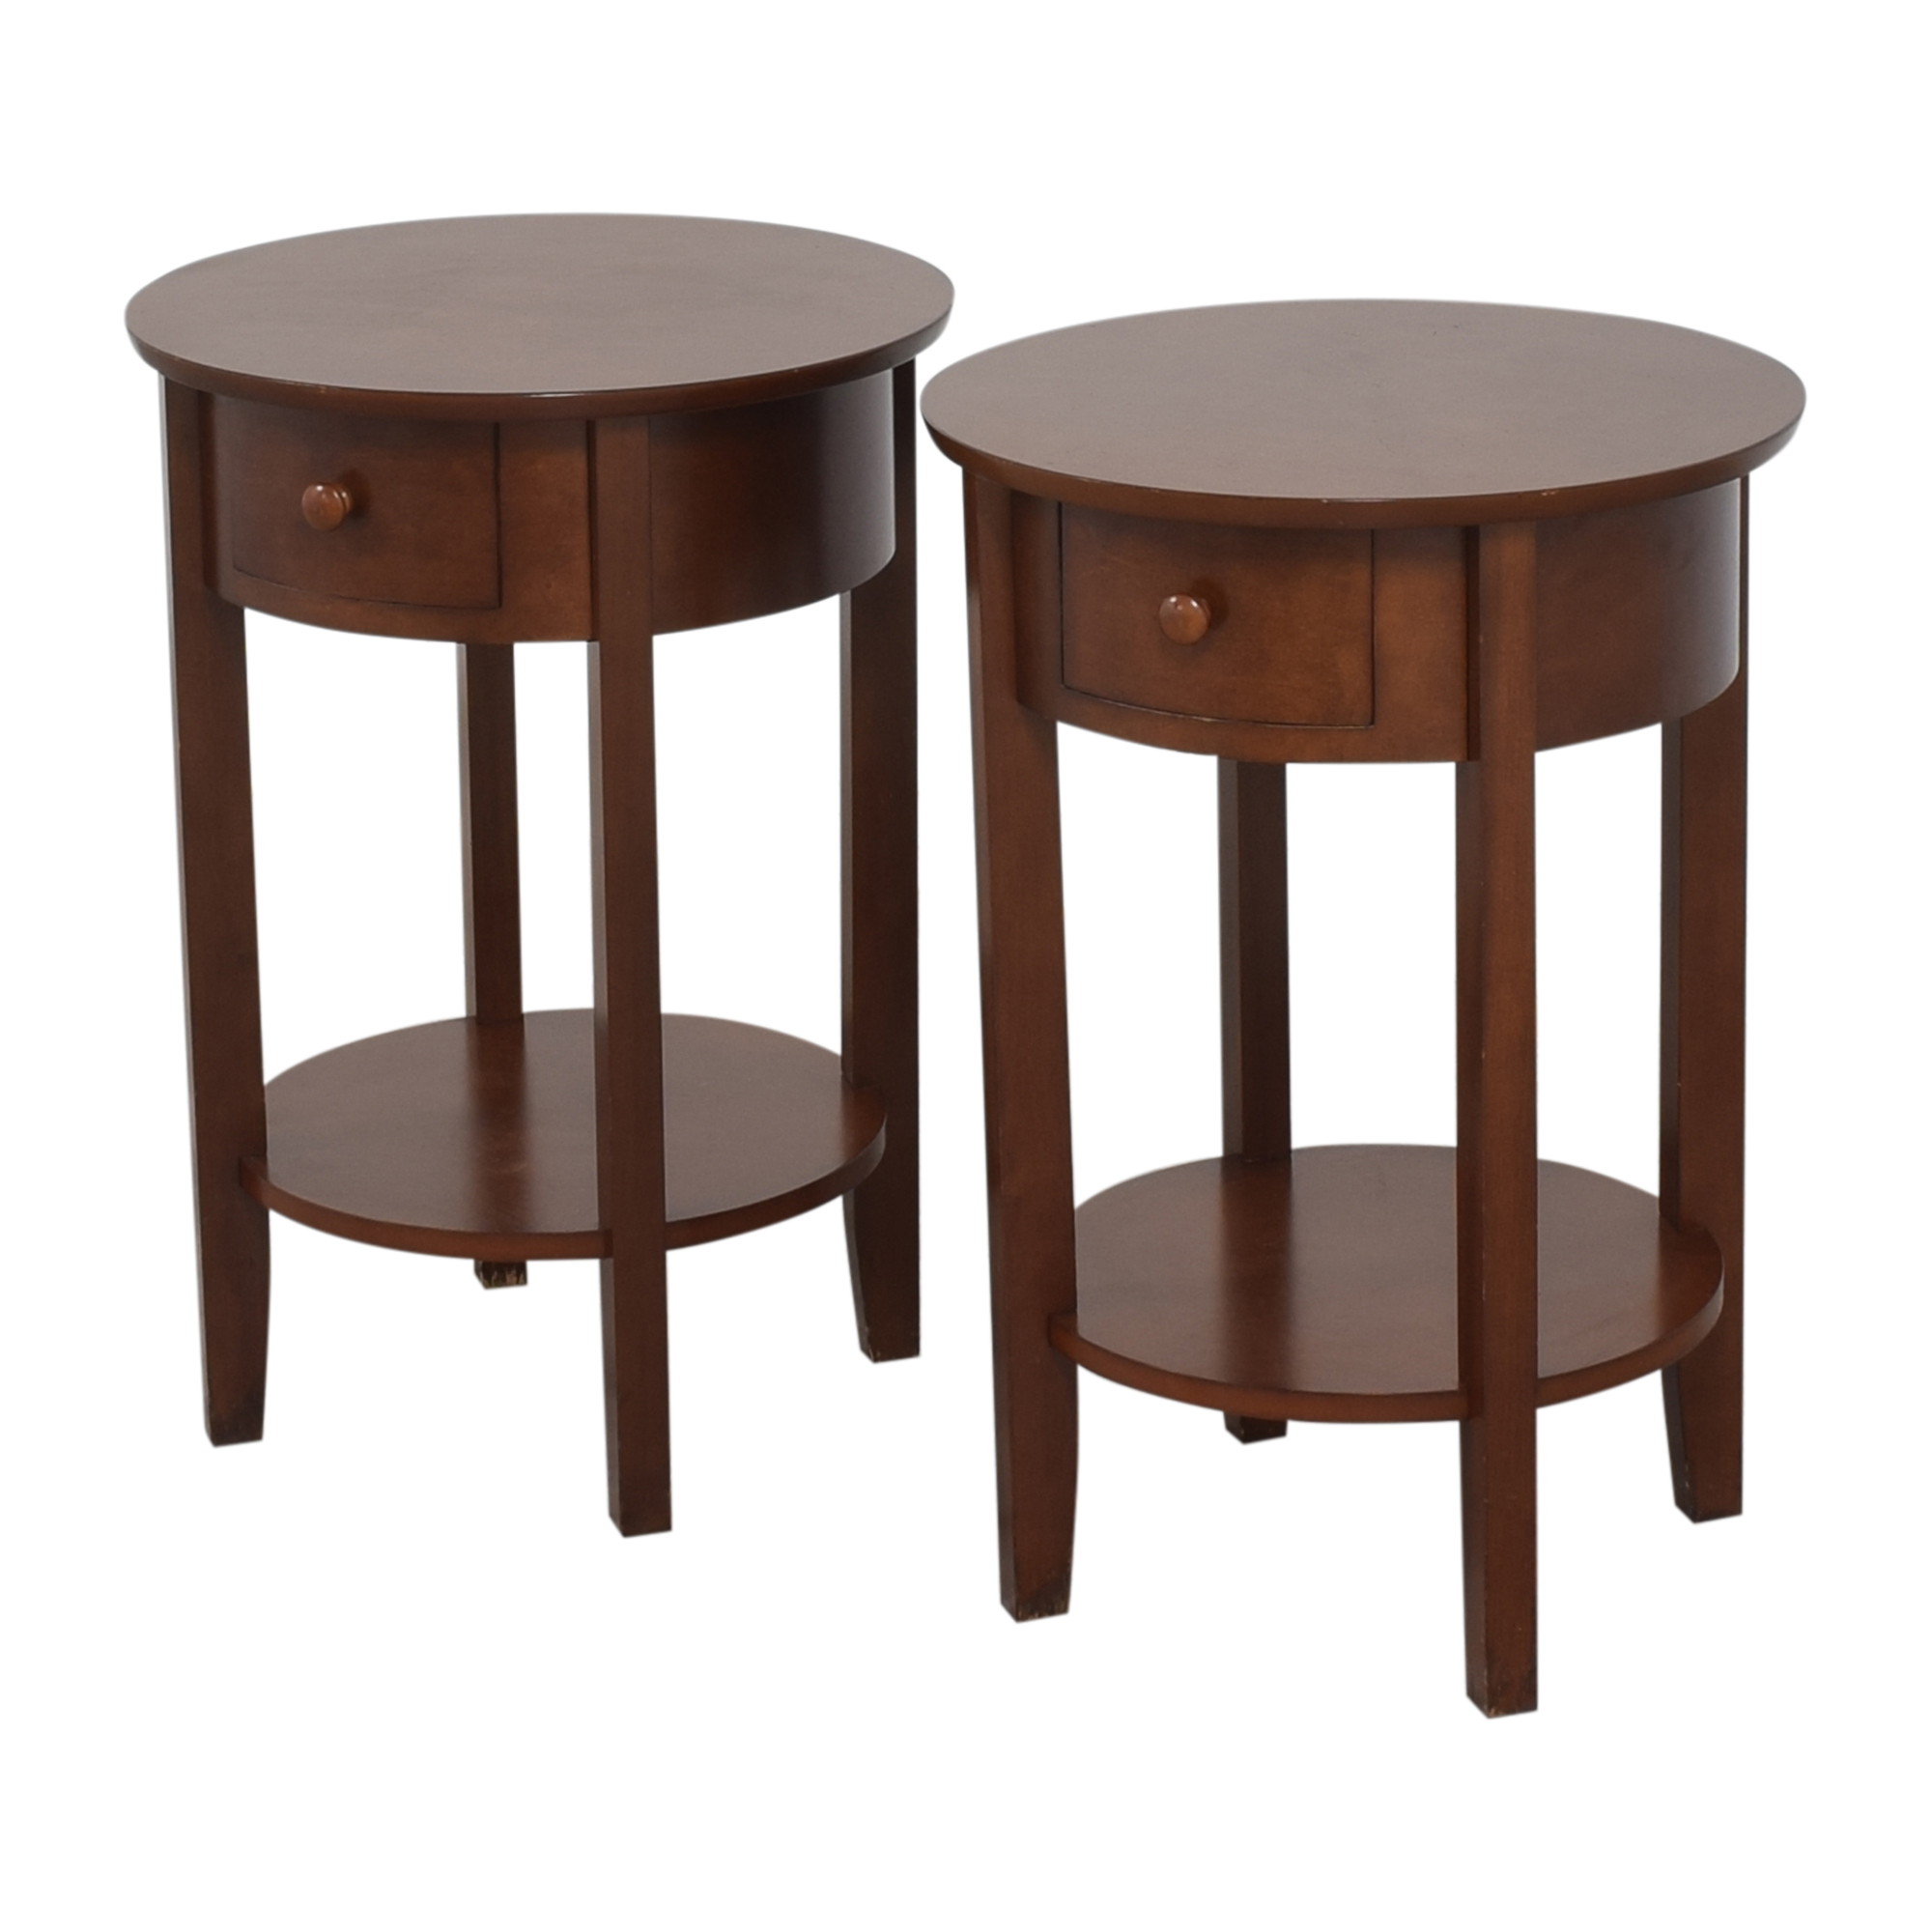 Pottery Barn Pottery Barn Round Top End Tables brown